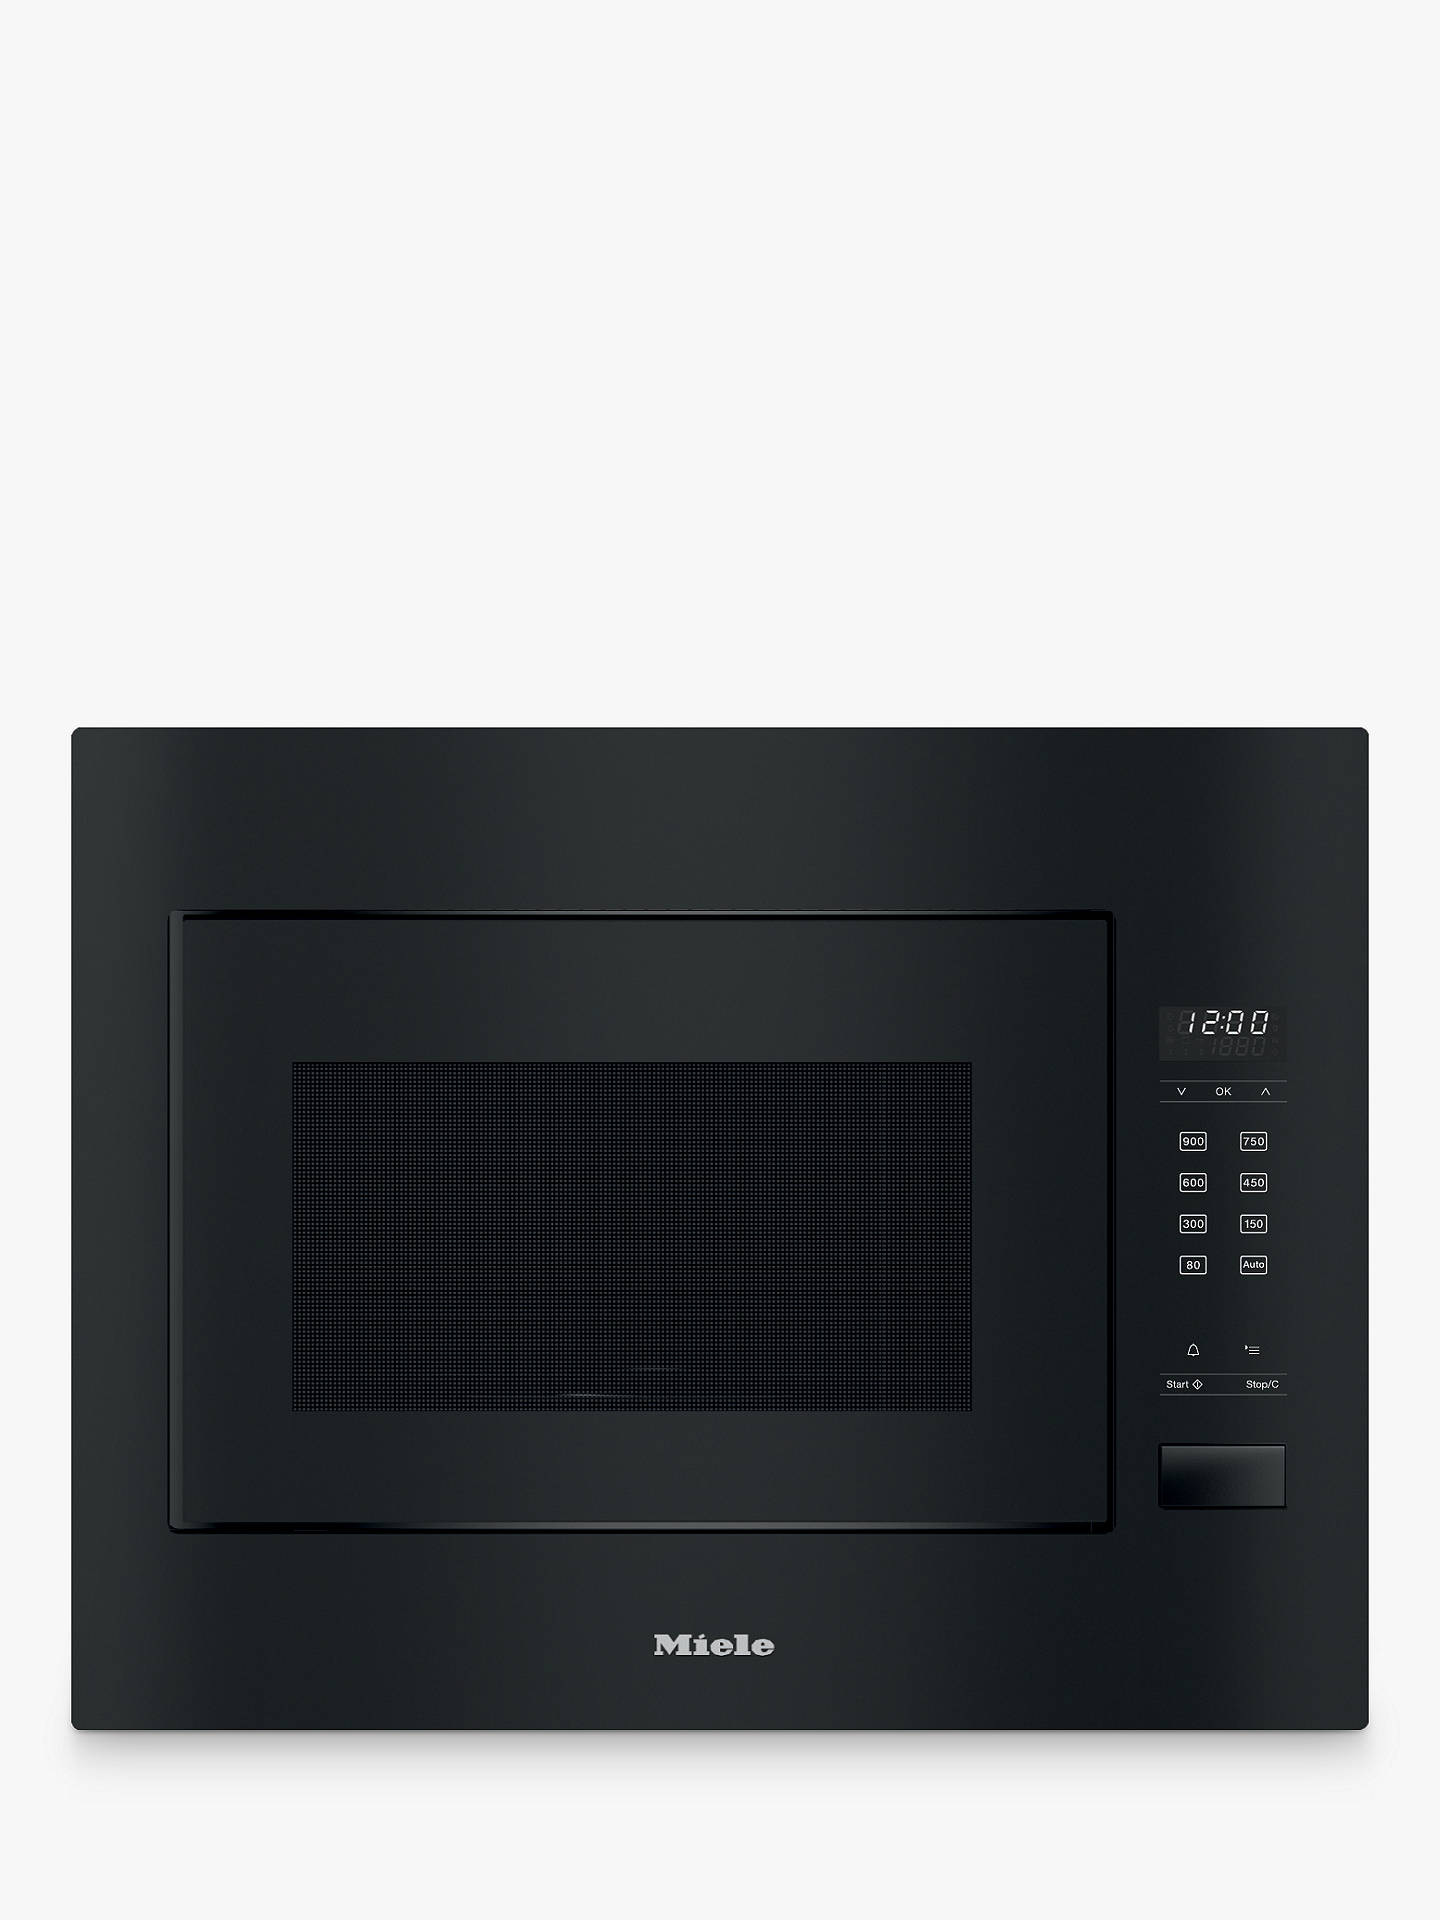 Miele M2240sc Built In Microwave Obsidian Black